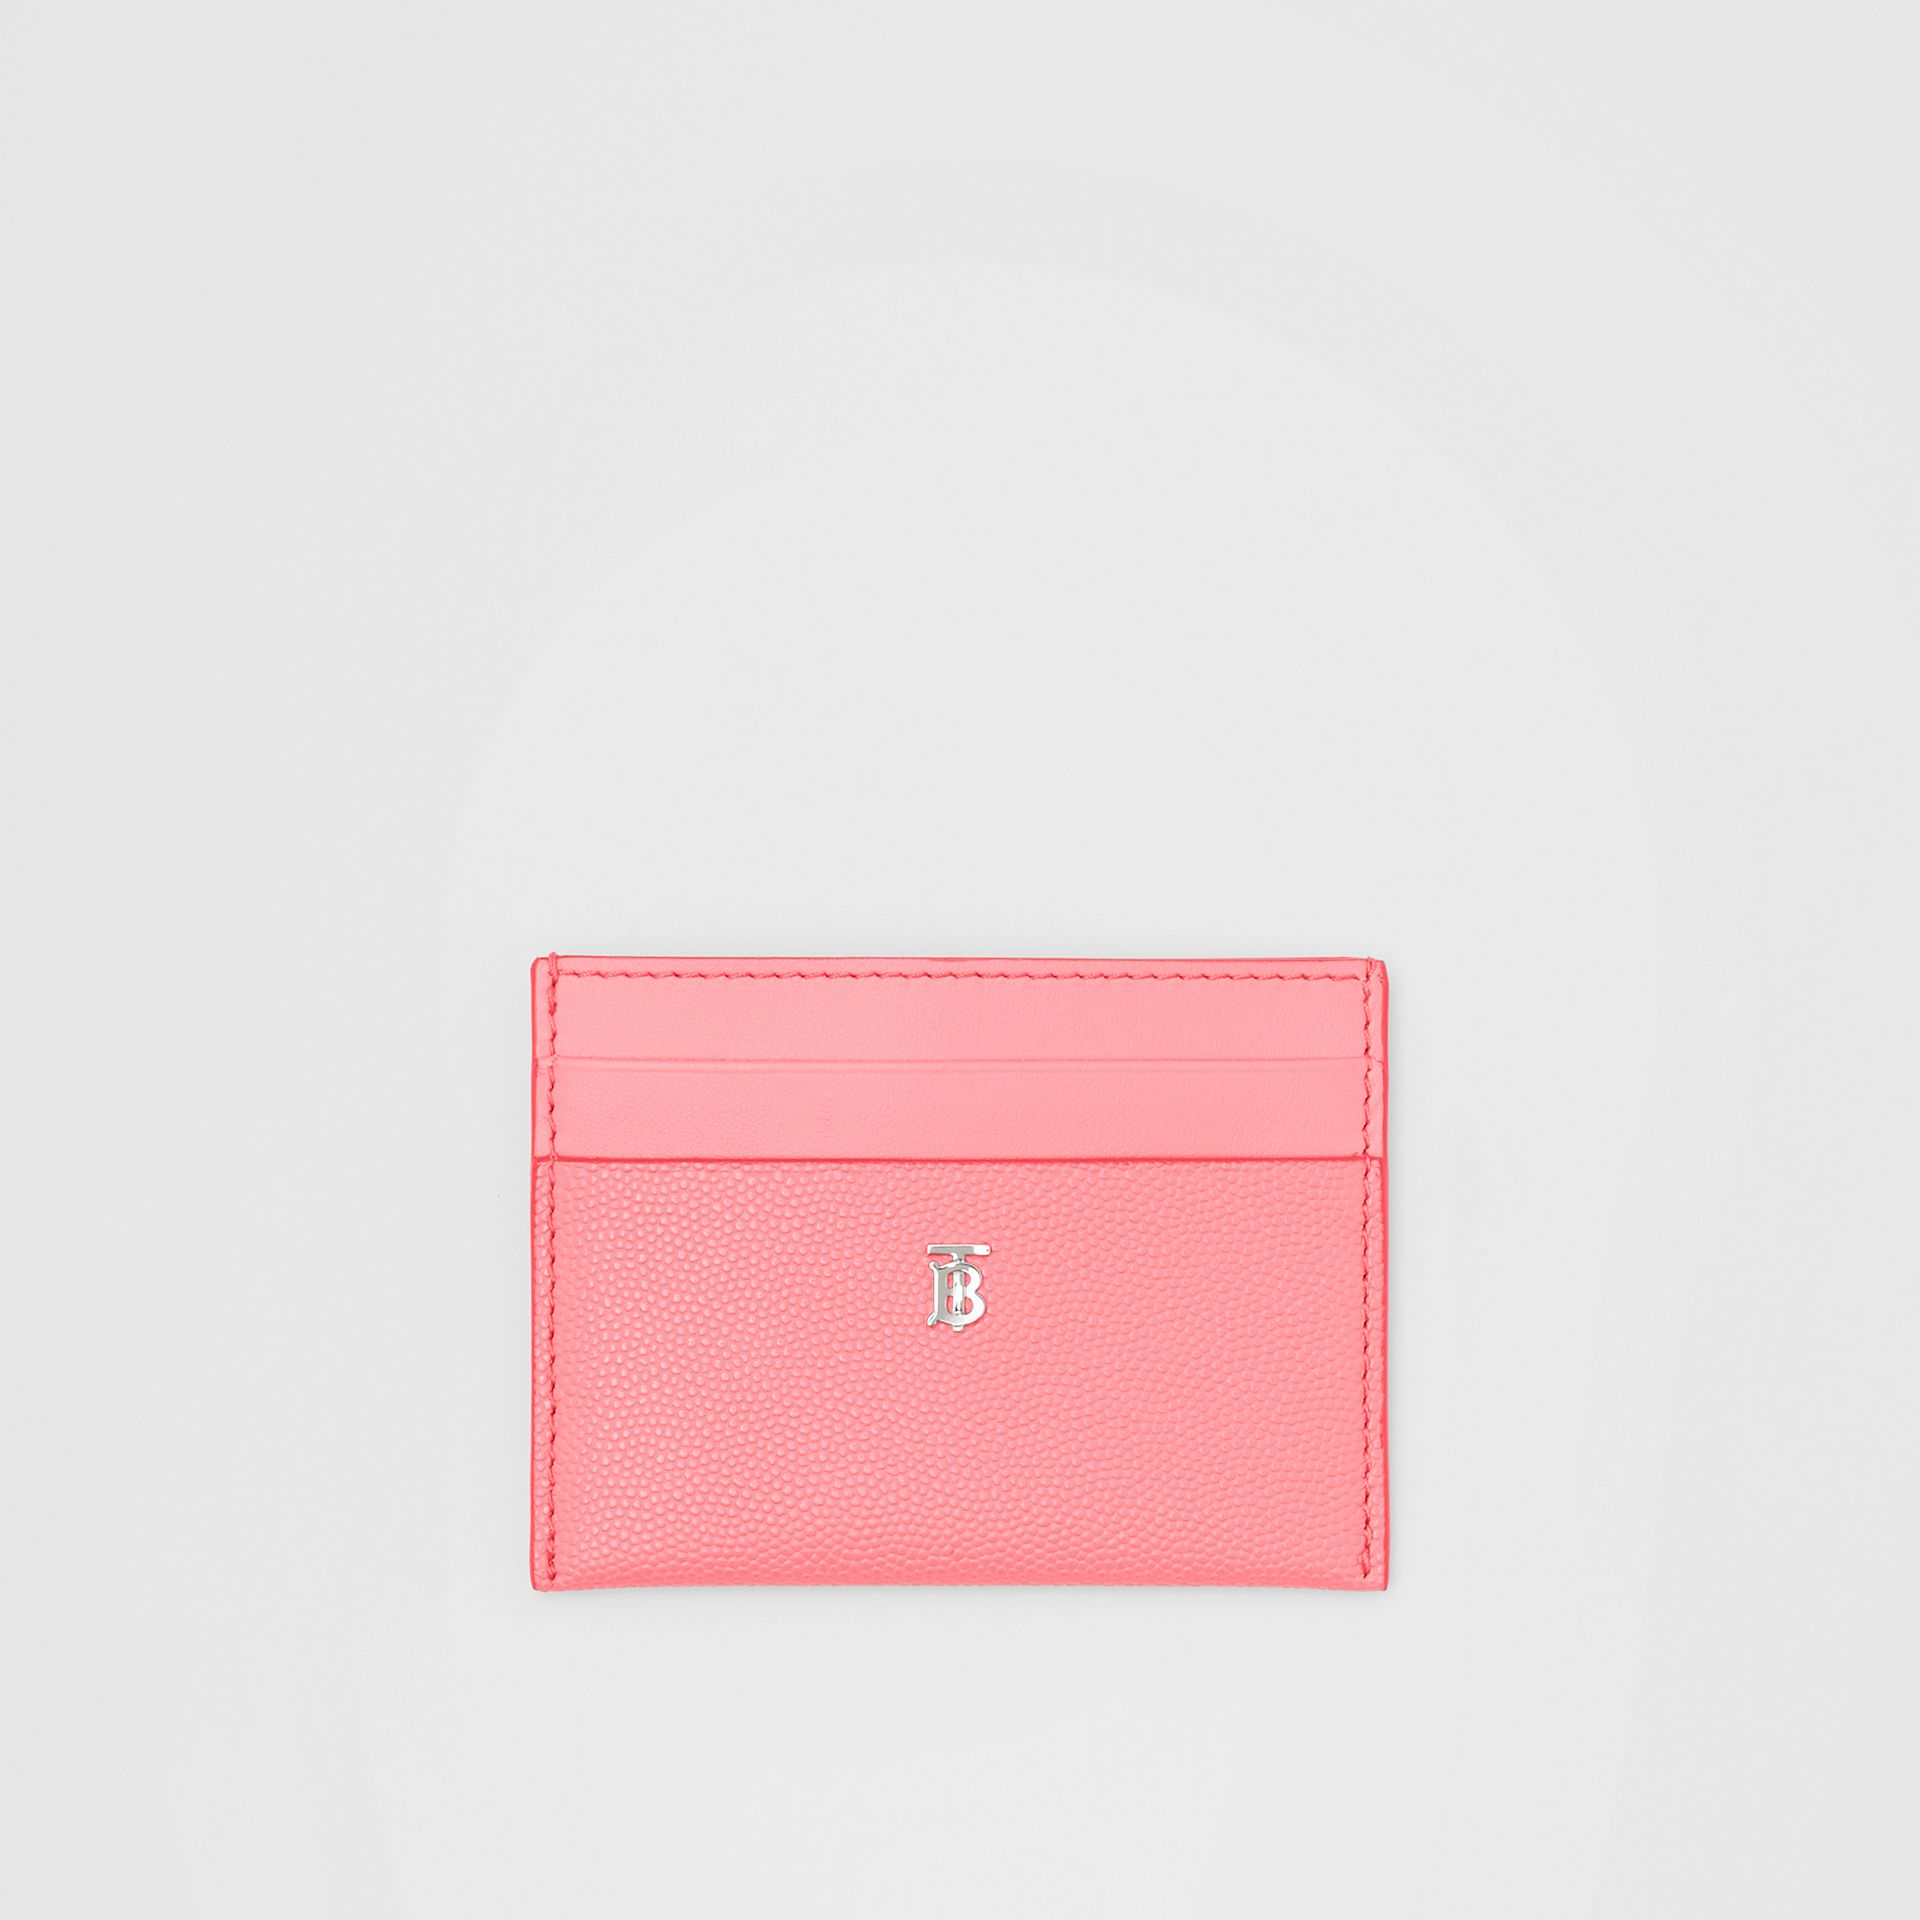 Monogram Motif Leather Card Case in Candy Floss/palladio - Women | Burberry Hong Kong S.A.R - gallery image 0